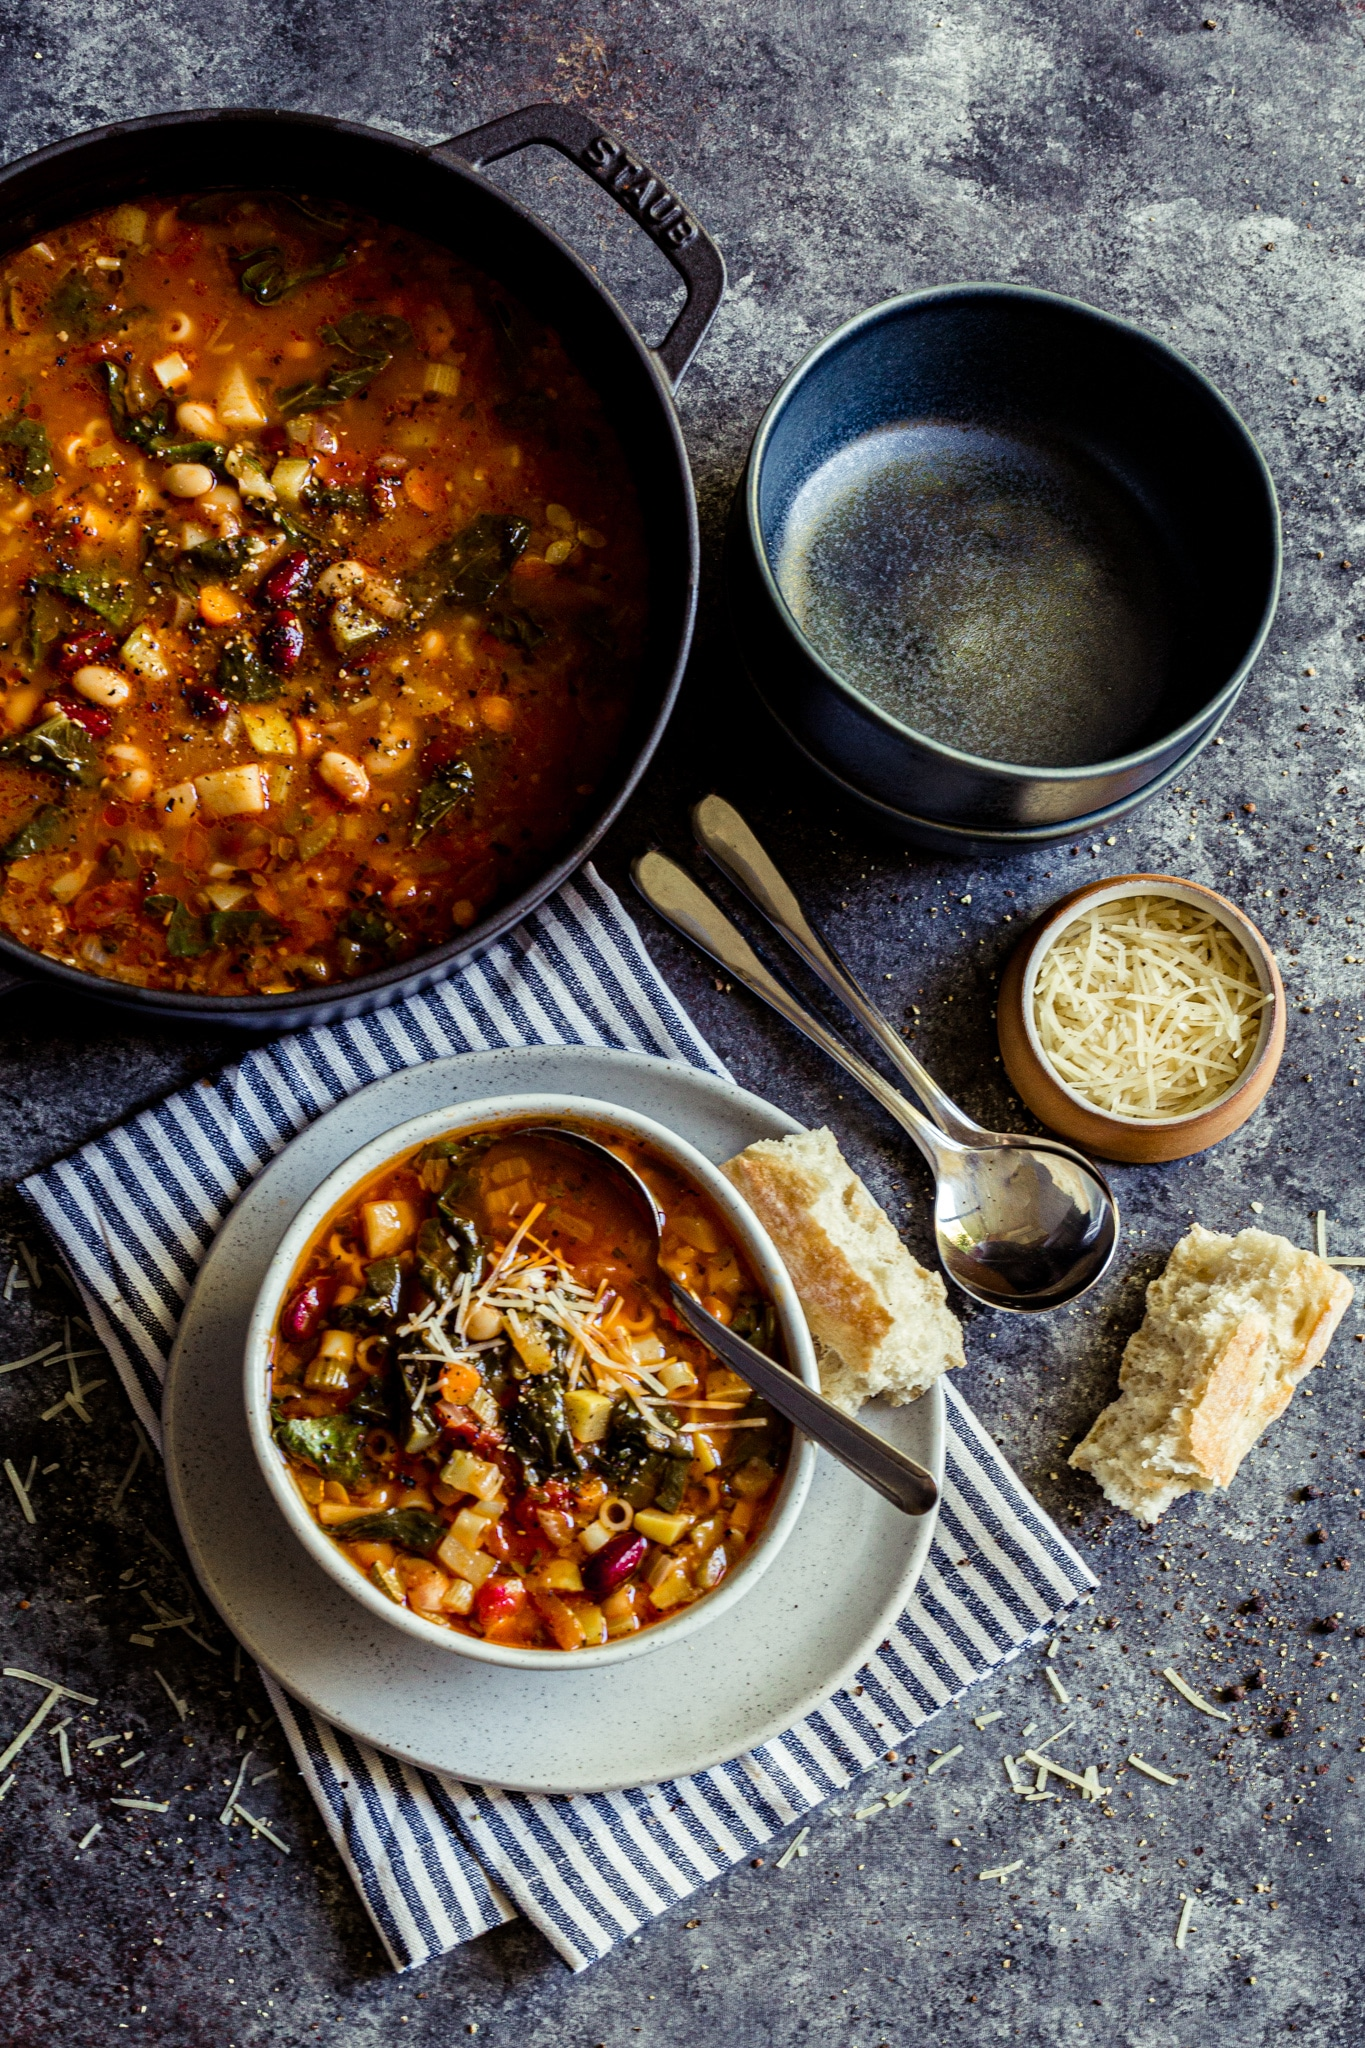 Minestrone soup in a pot on the dinner table along with individual serving bowls.